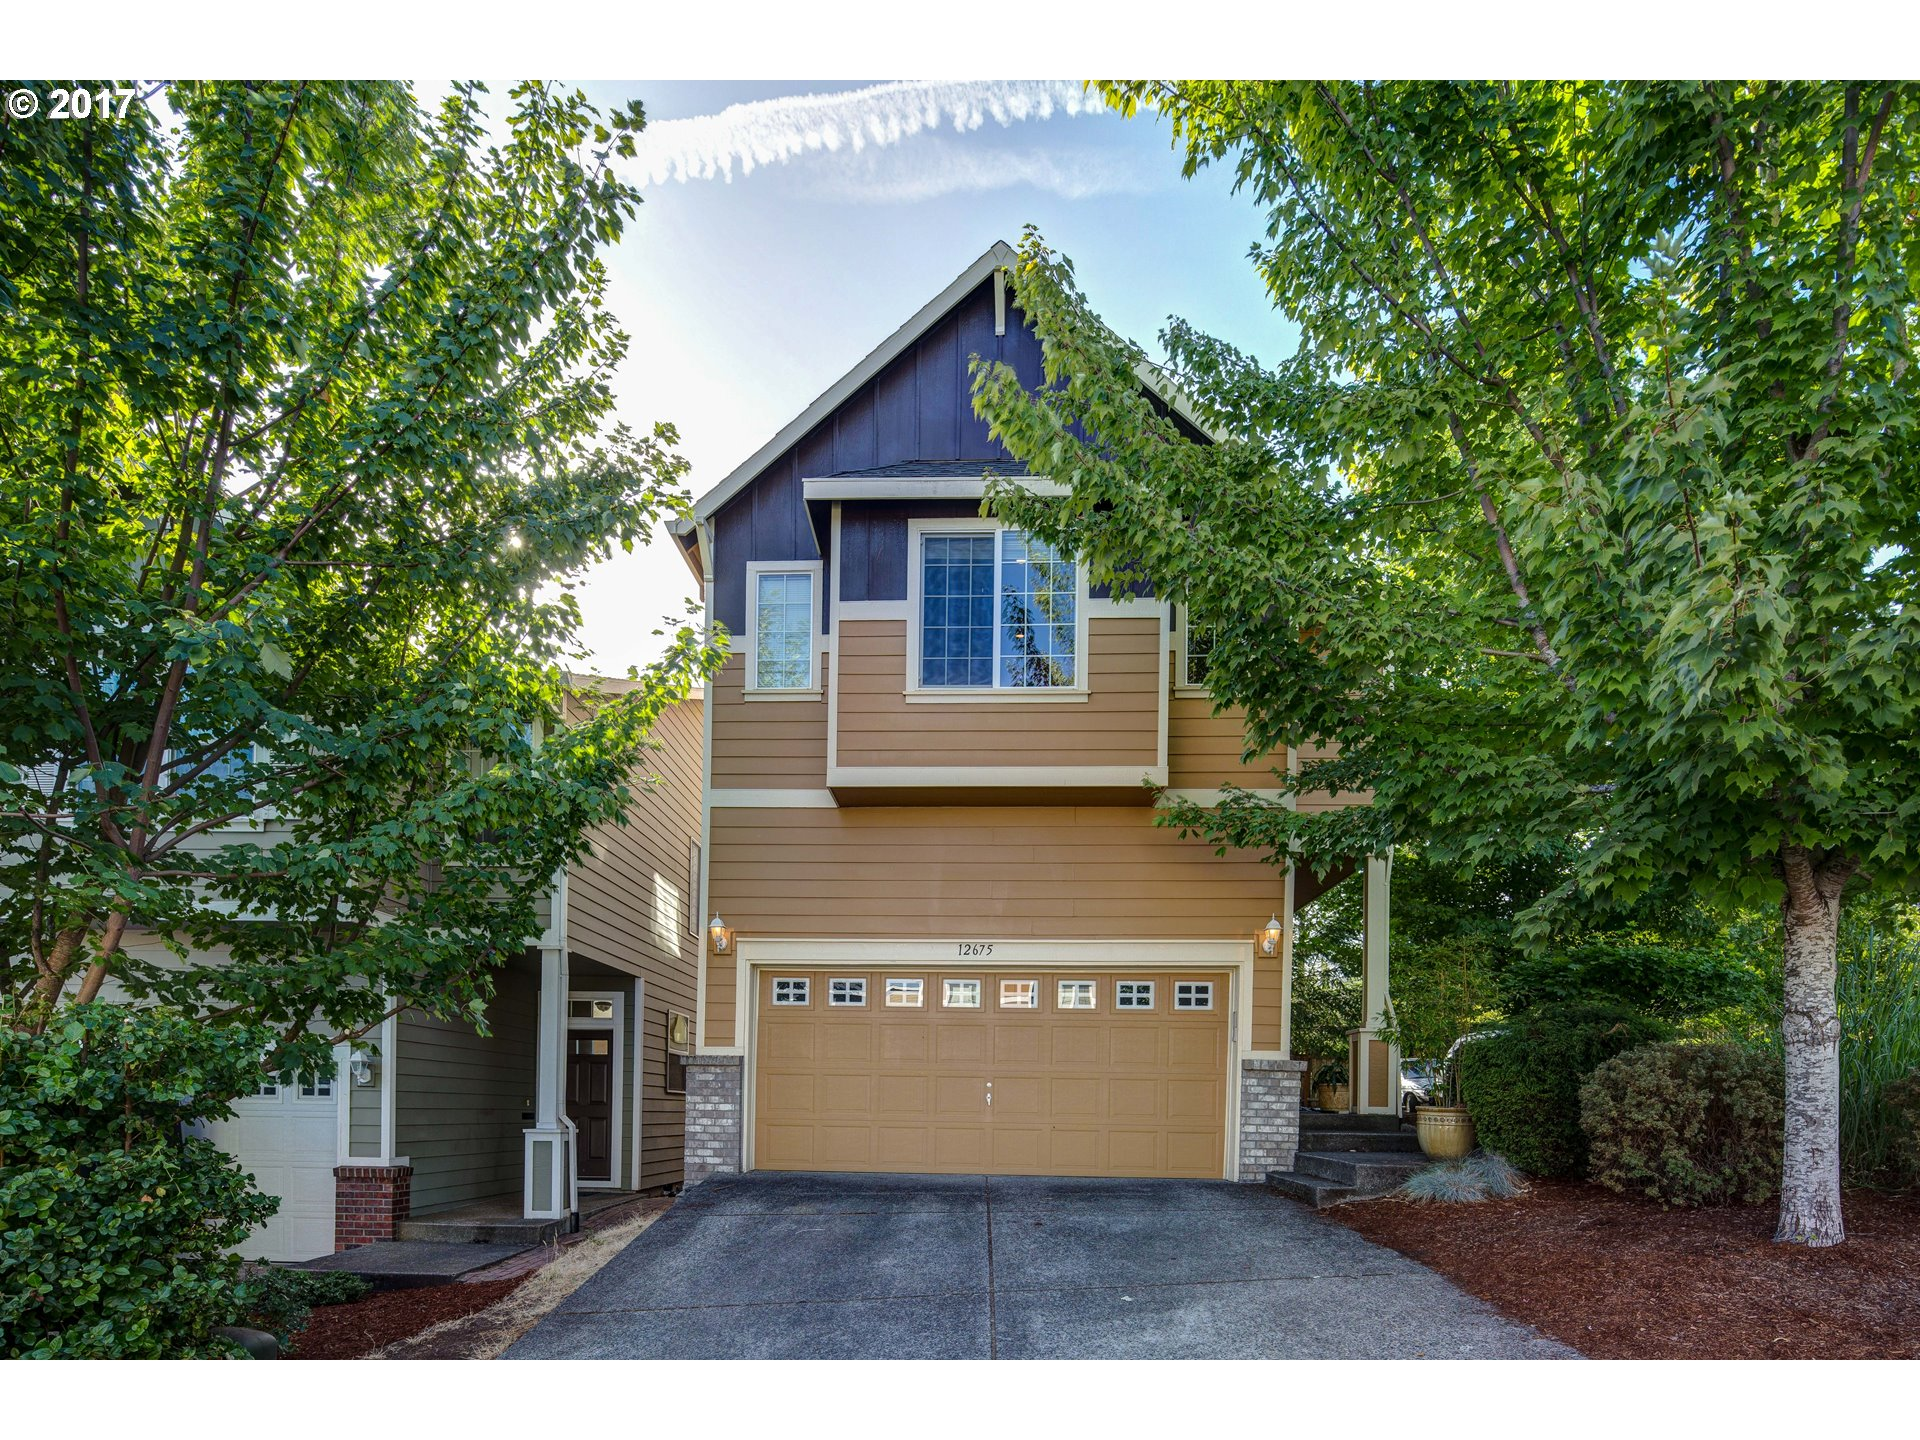 Great location, good layout home with 3 beds/ 2.5 baths plus a loft on the second level, great for home office/game room. Corner lot with low maintenance yard. Conveniently located, near New Seasons, Cinetopia, Big Al's, and great schools! Call your agent to see it today!!!